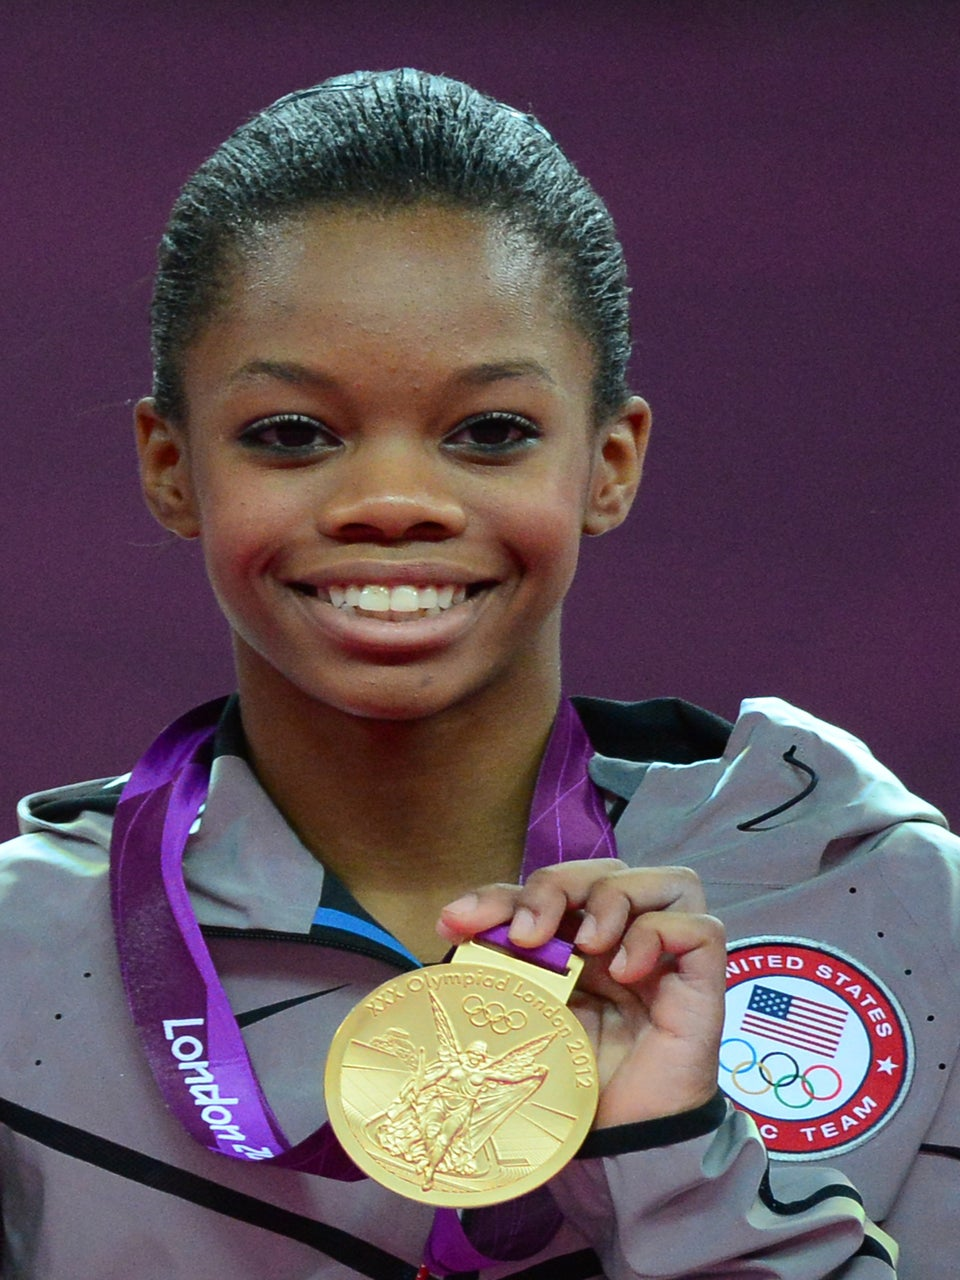 Spoiler Alert: Gabby Douglas Wins Gold in the Gymnastics All-Around Final